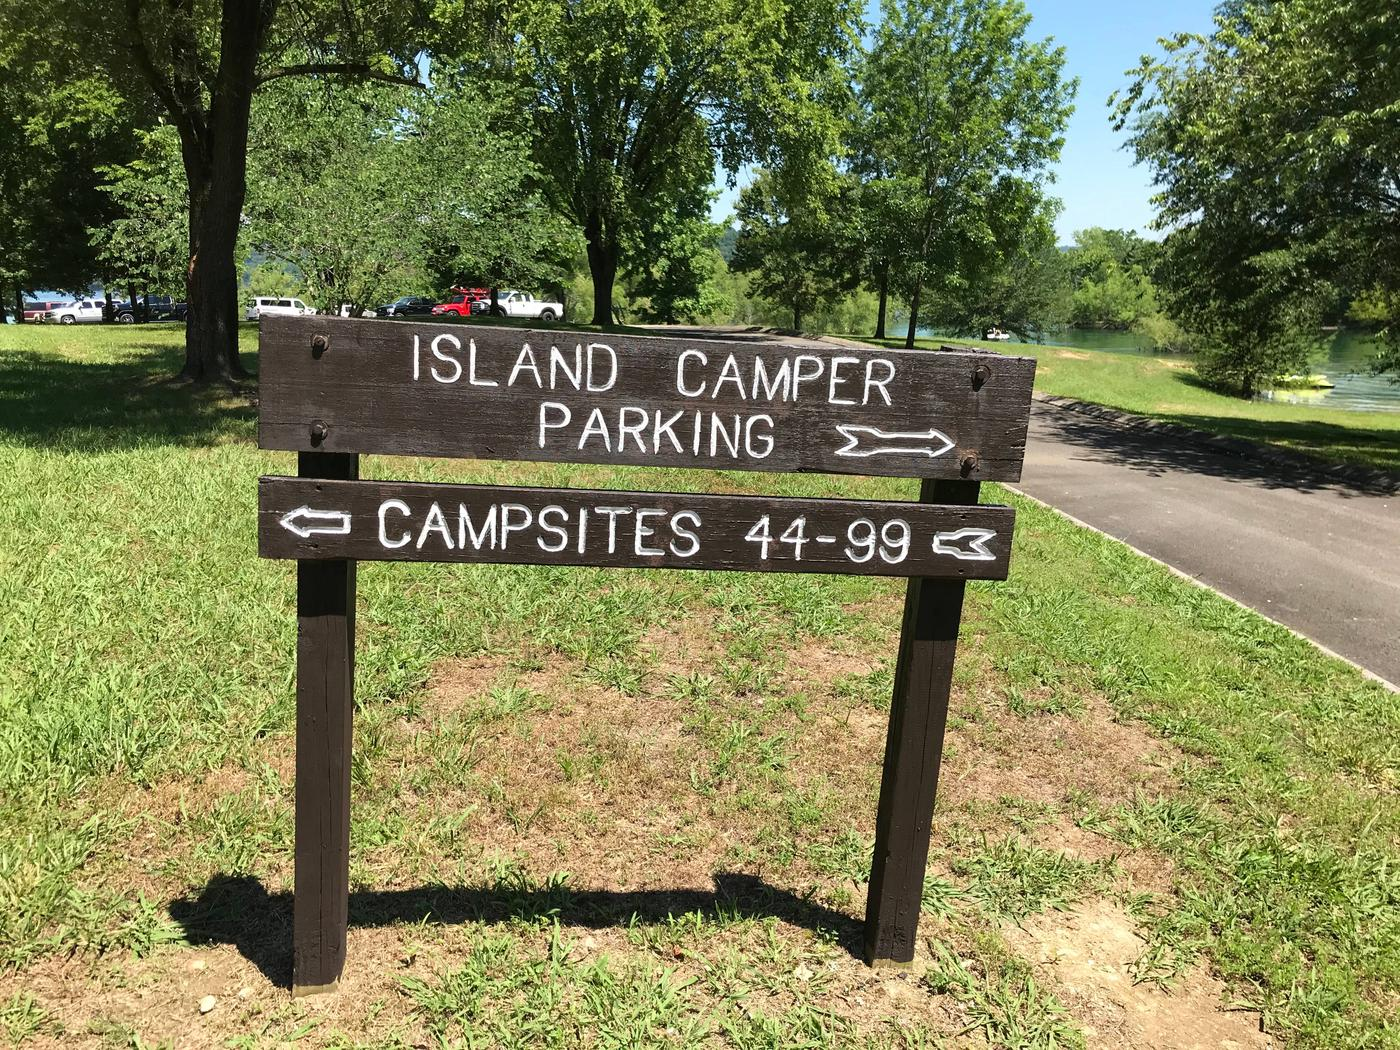 LILLYDALE CAMPGROUND SITE #103 ISLAND CAMPER DIRECTIONAL SIGN